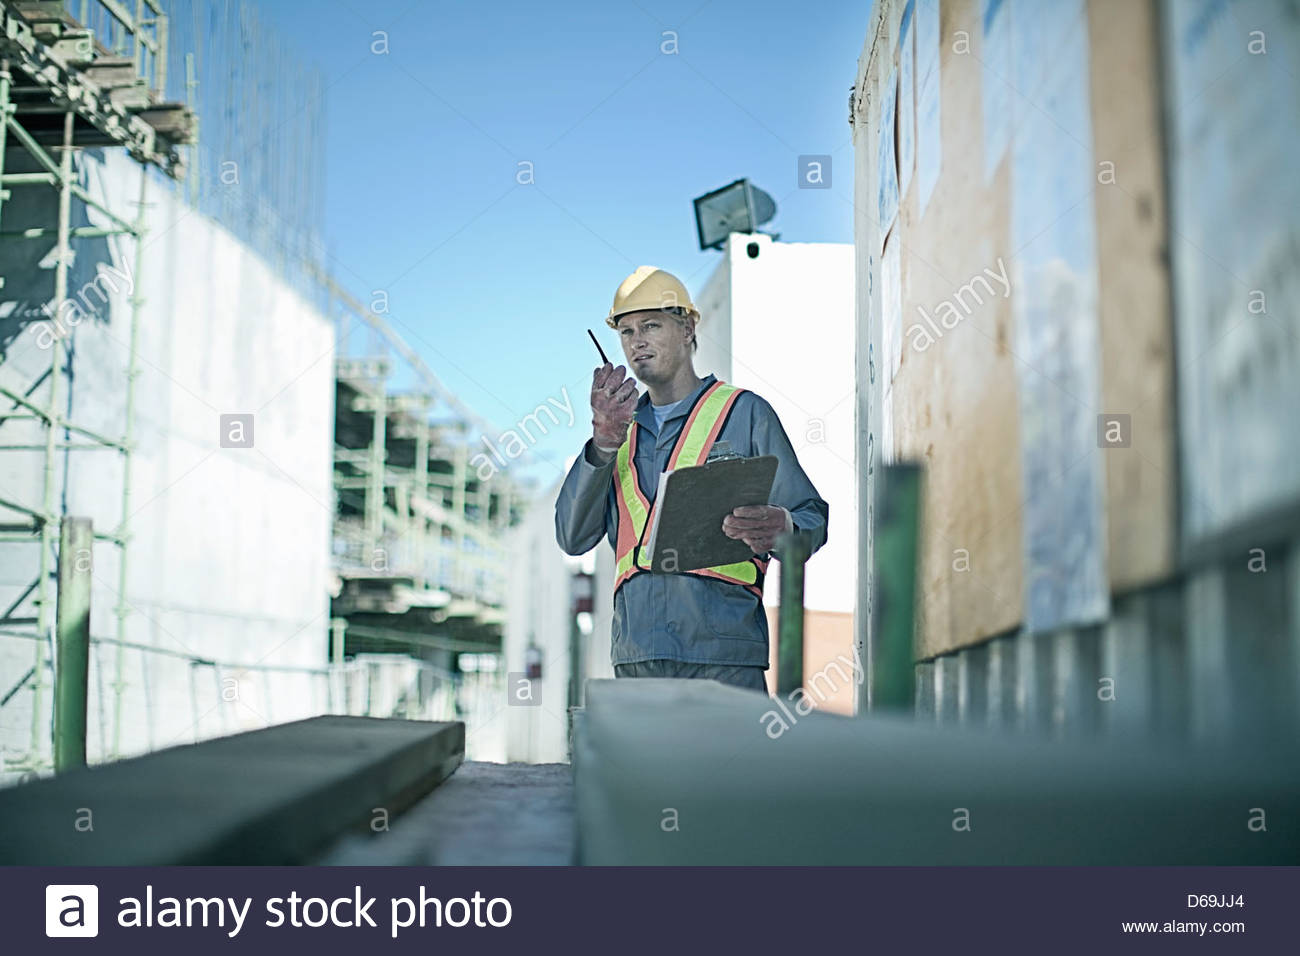 Construction worker using walkie talkie - Stock Image